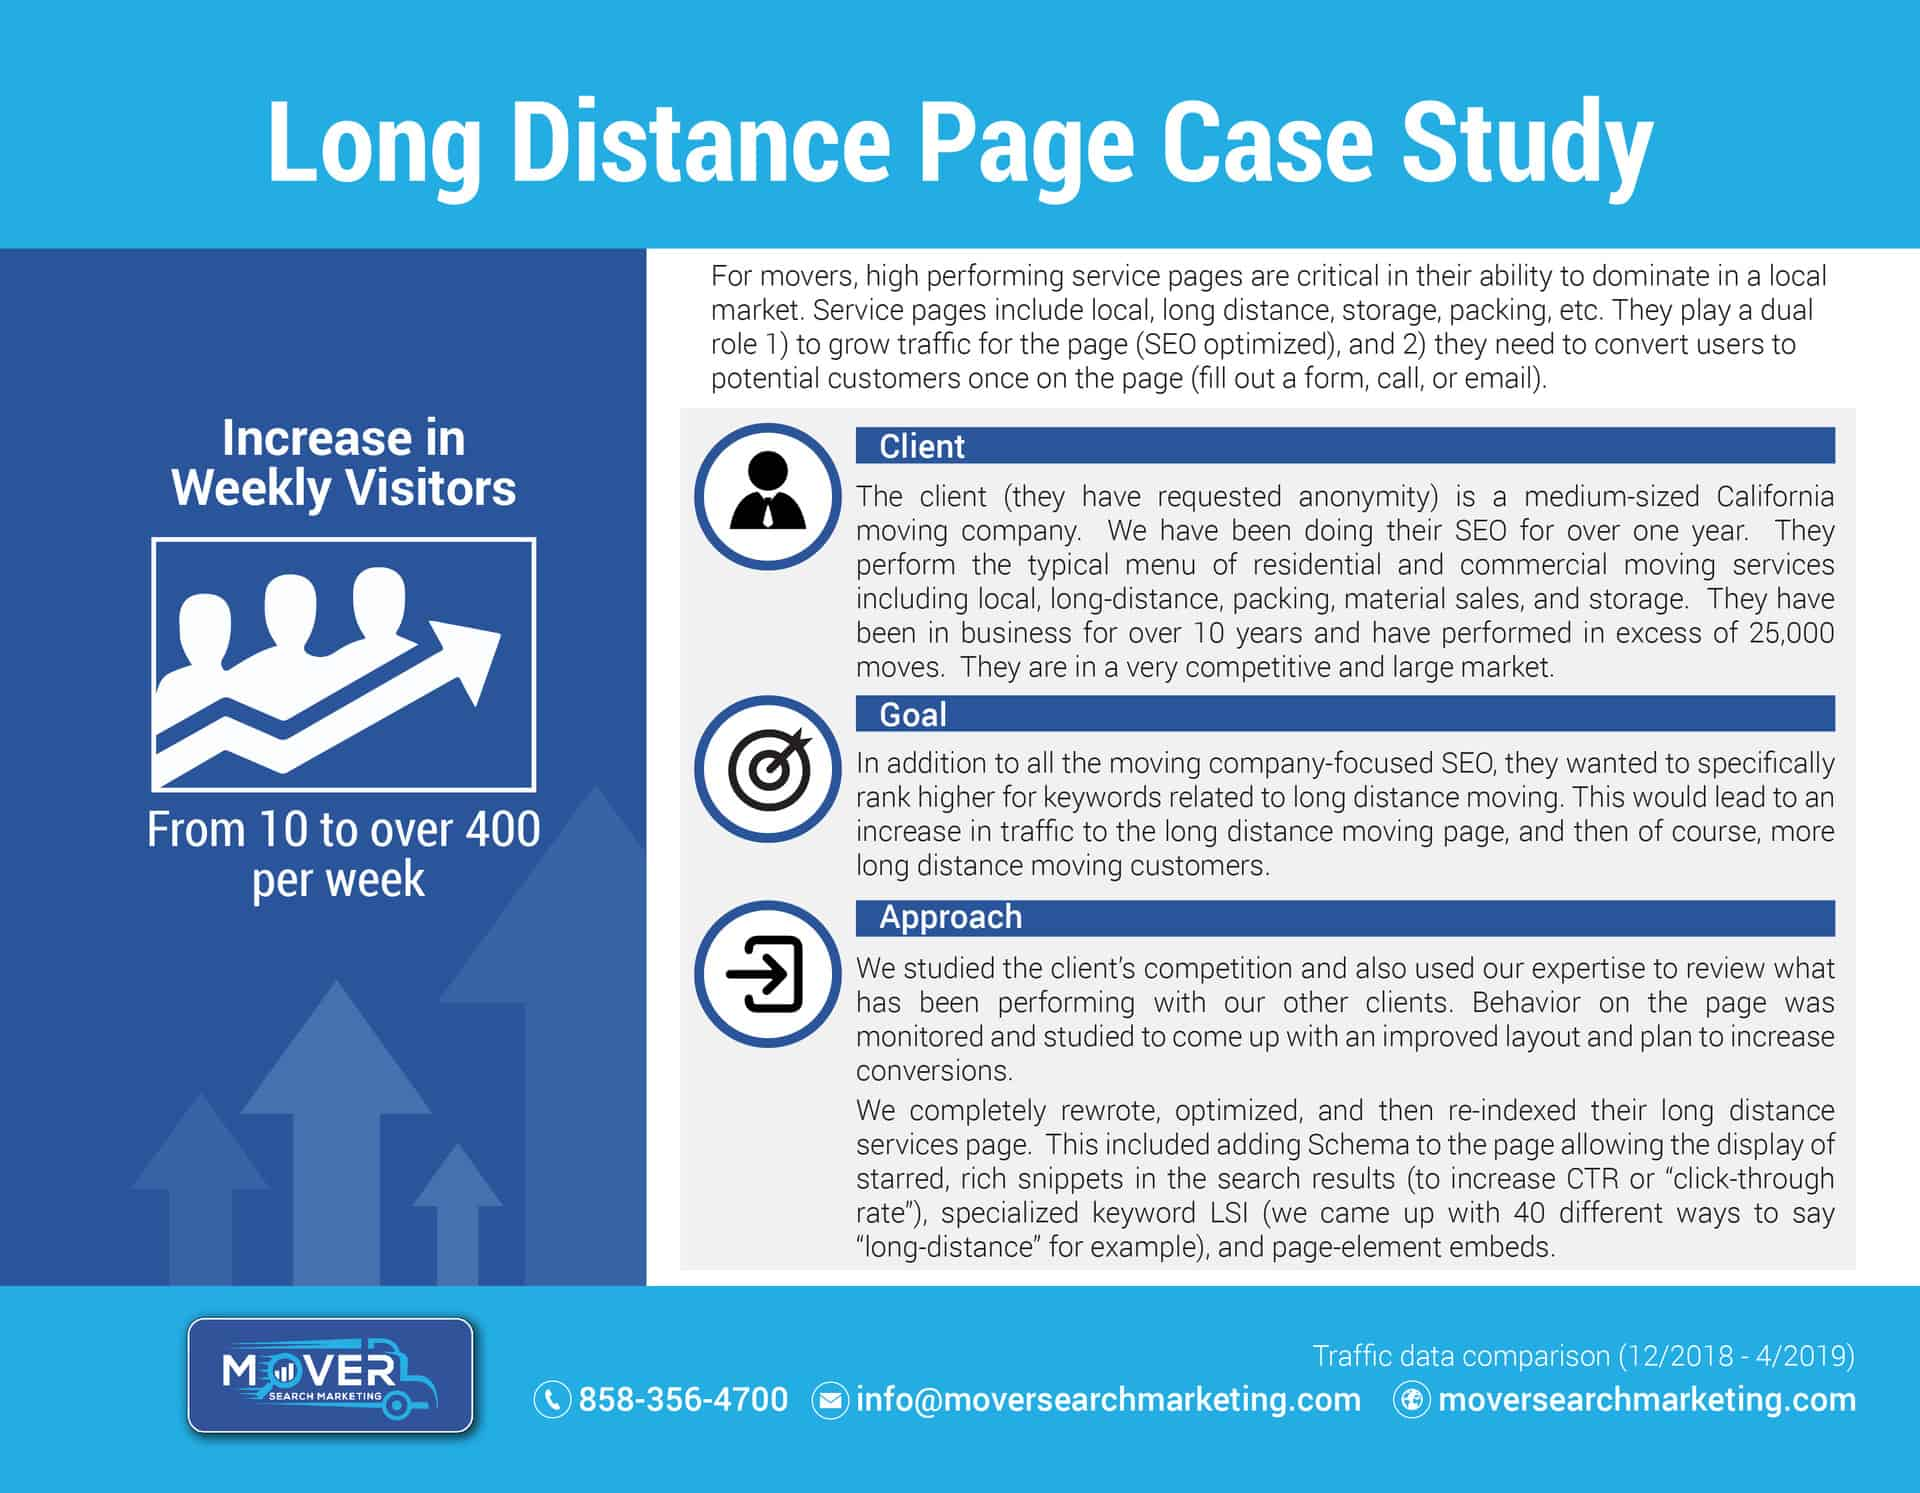 Long Distance SEO Case Study